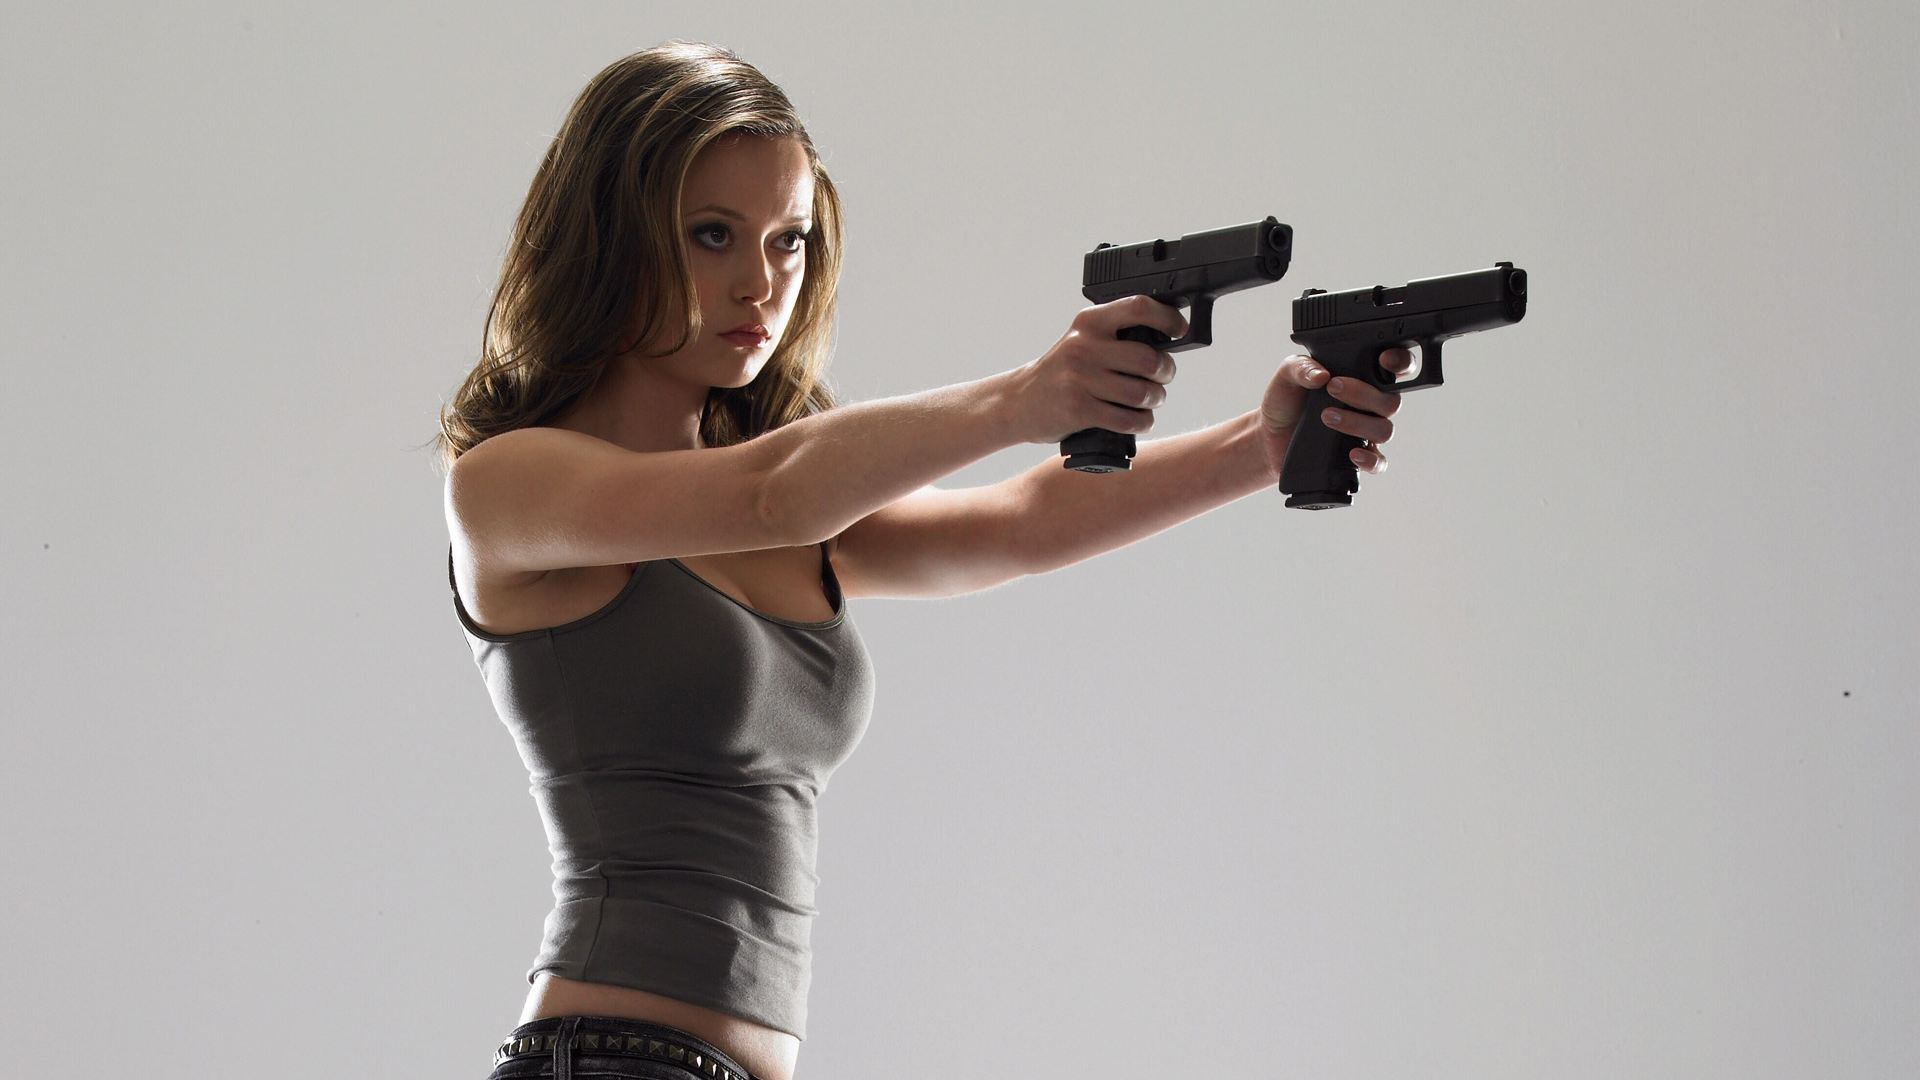 Terminator: The Sarah Connor HD Wallpaper